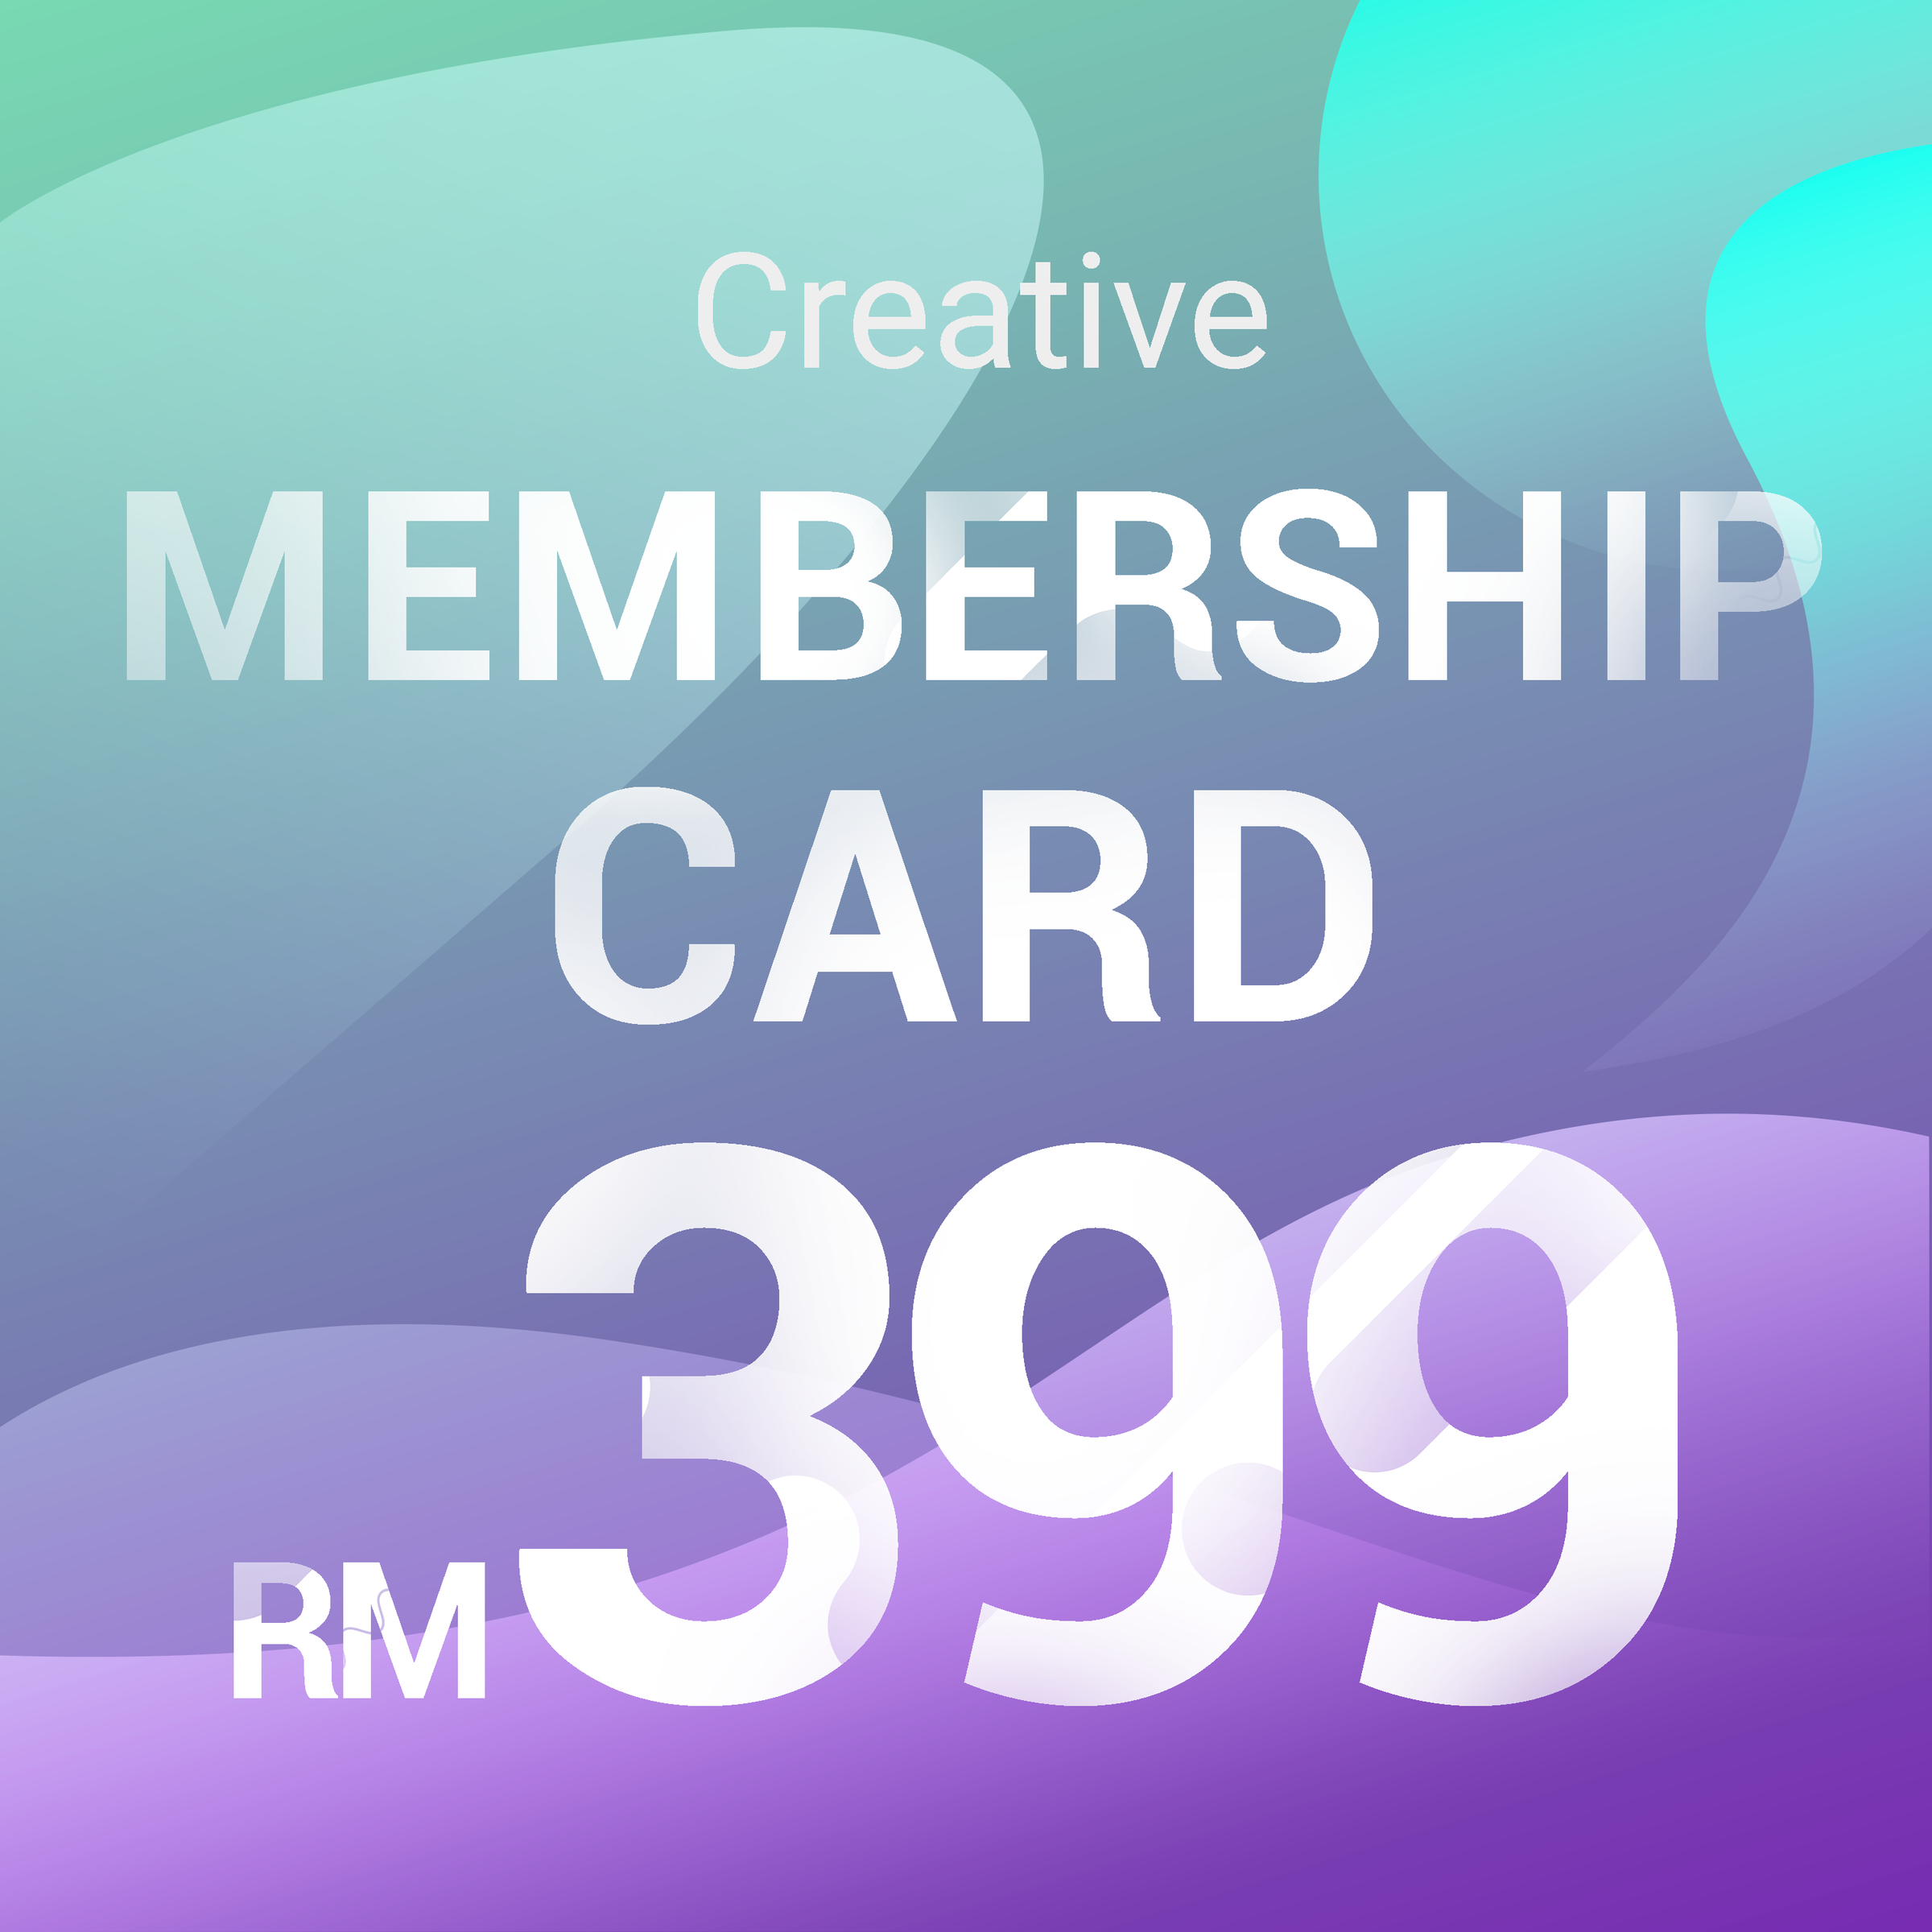 Membership-Card_399.png